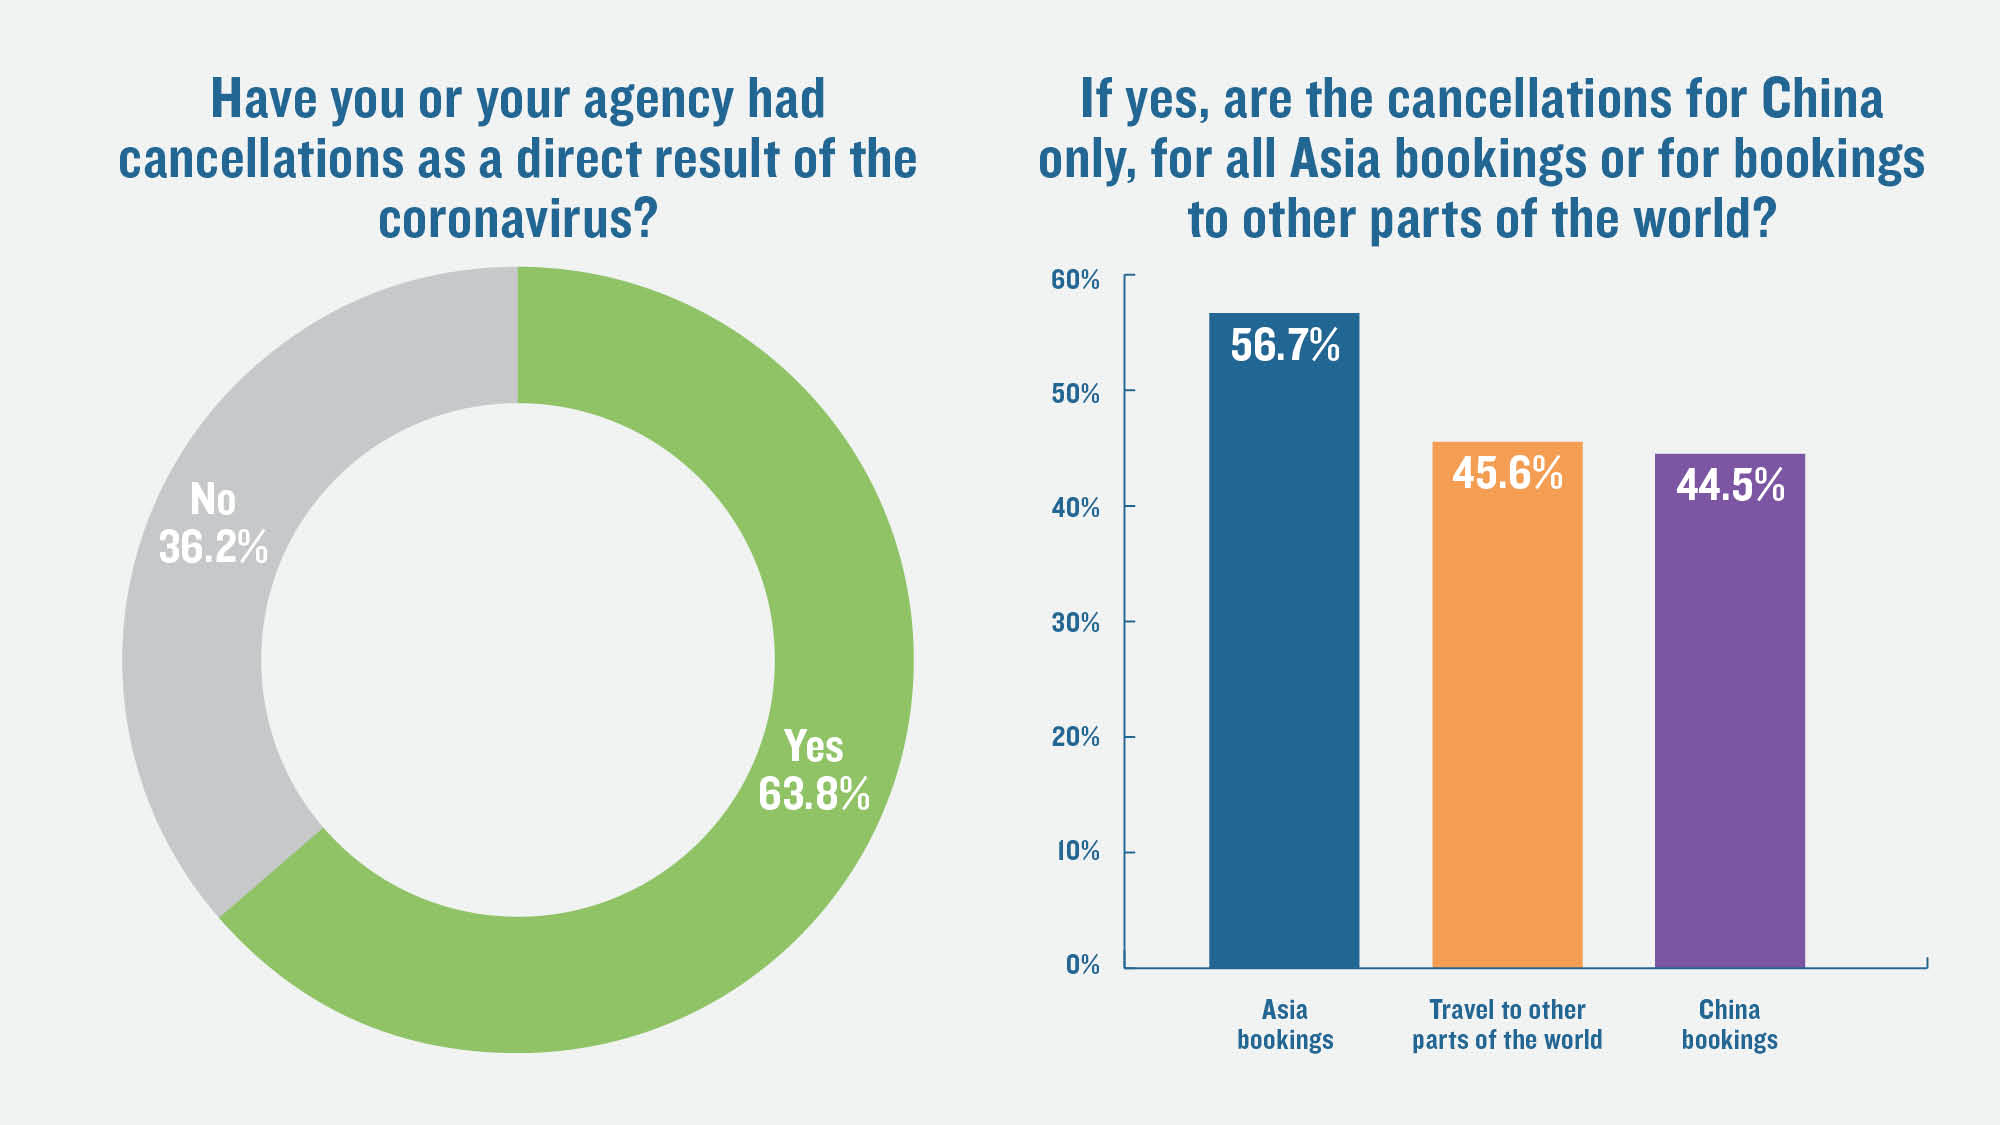 TW poll: A majority of advisors see virus-related cancellations